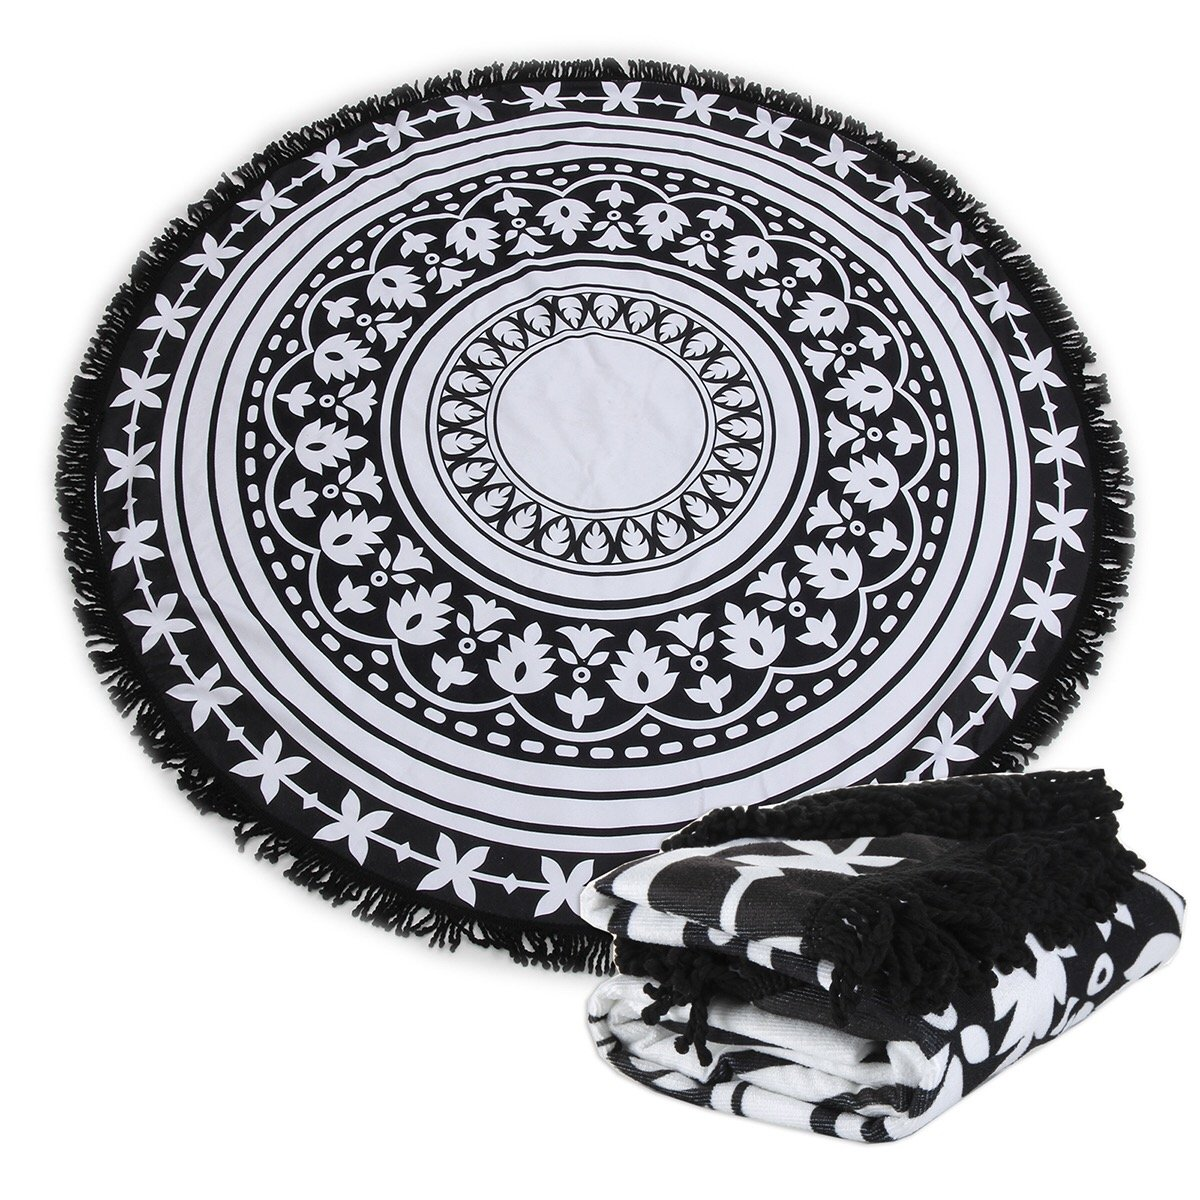 Polly House Large Round Beach Towel Blanket with Tassels Ultra Soft 59 inch Across Multifunctional Purposes Blanket, Picnic Blanket, Bed Cover, Wash Machine Easy wash (117 Black Mandala)